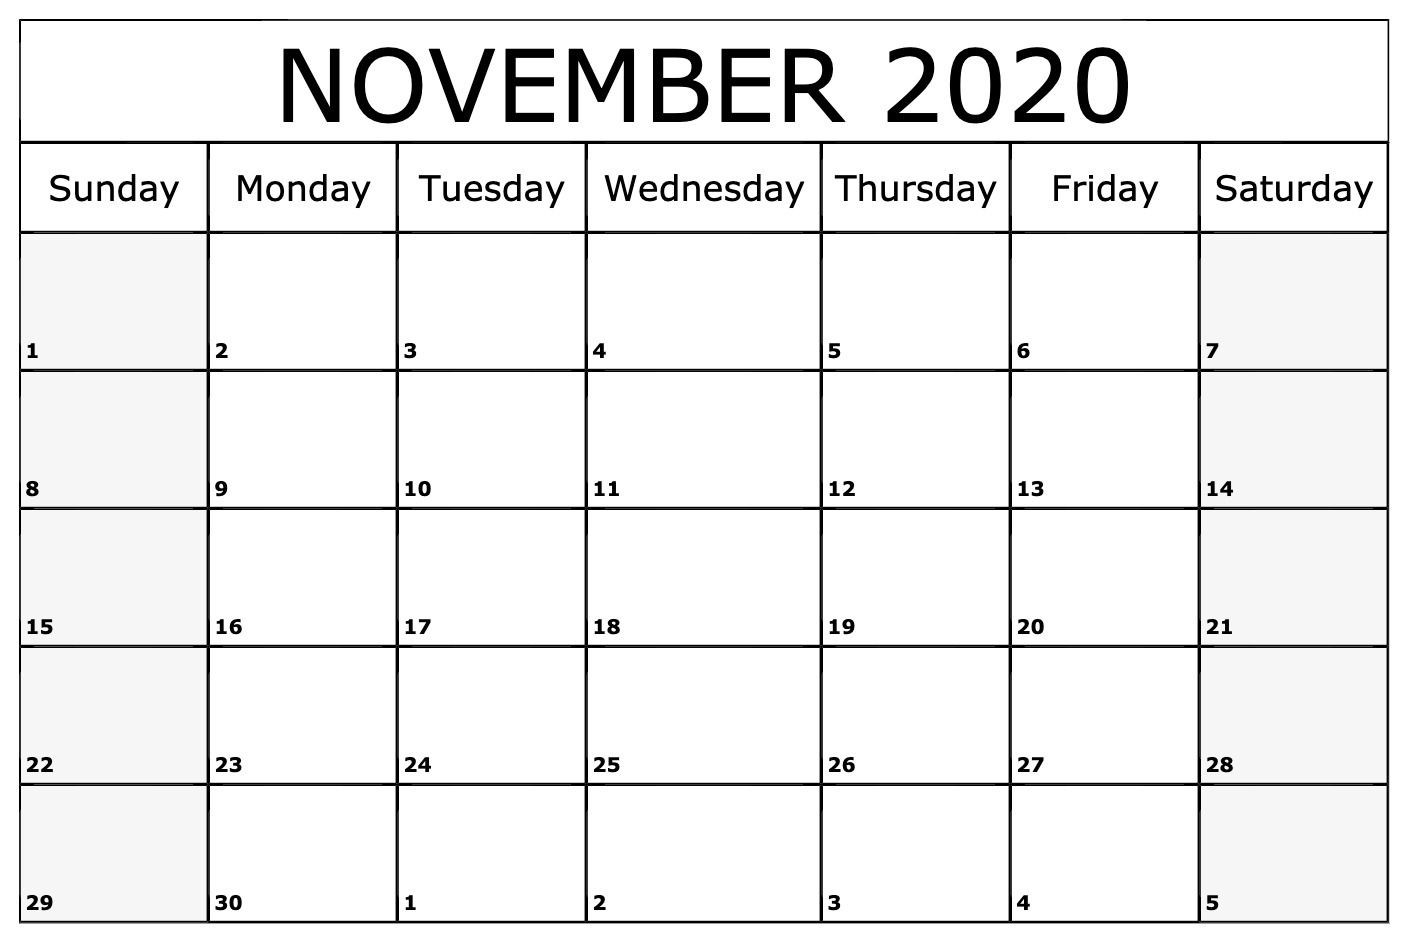 November 2020 Calendar Printable Template | Monthly-January 2020 Calendar With Holidays Printable